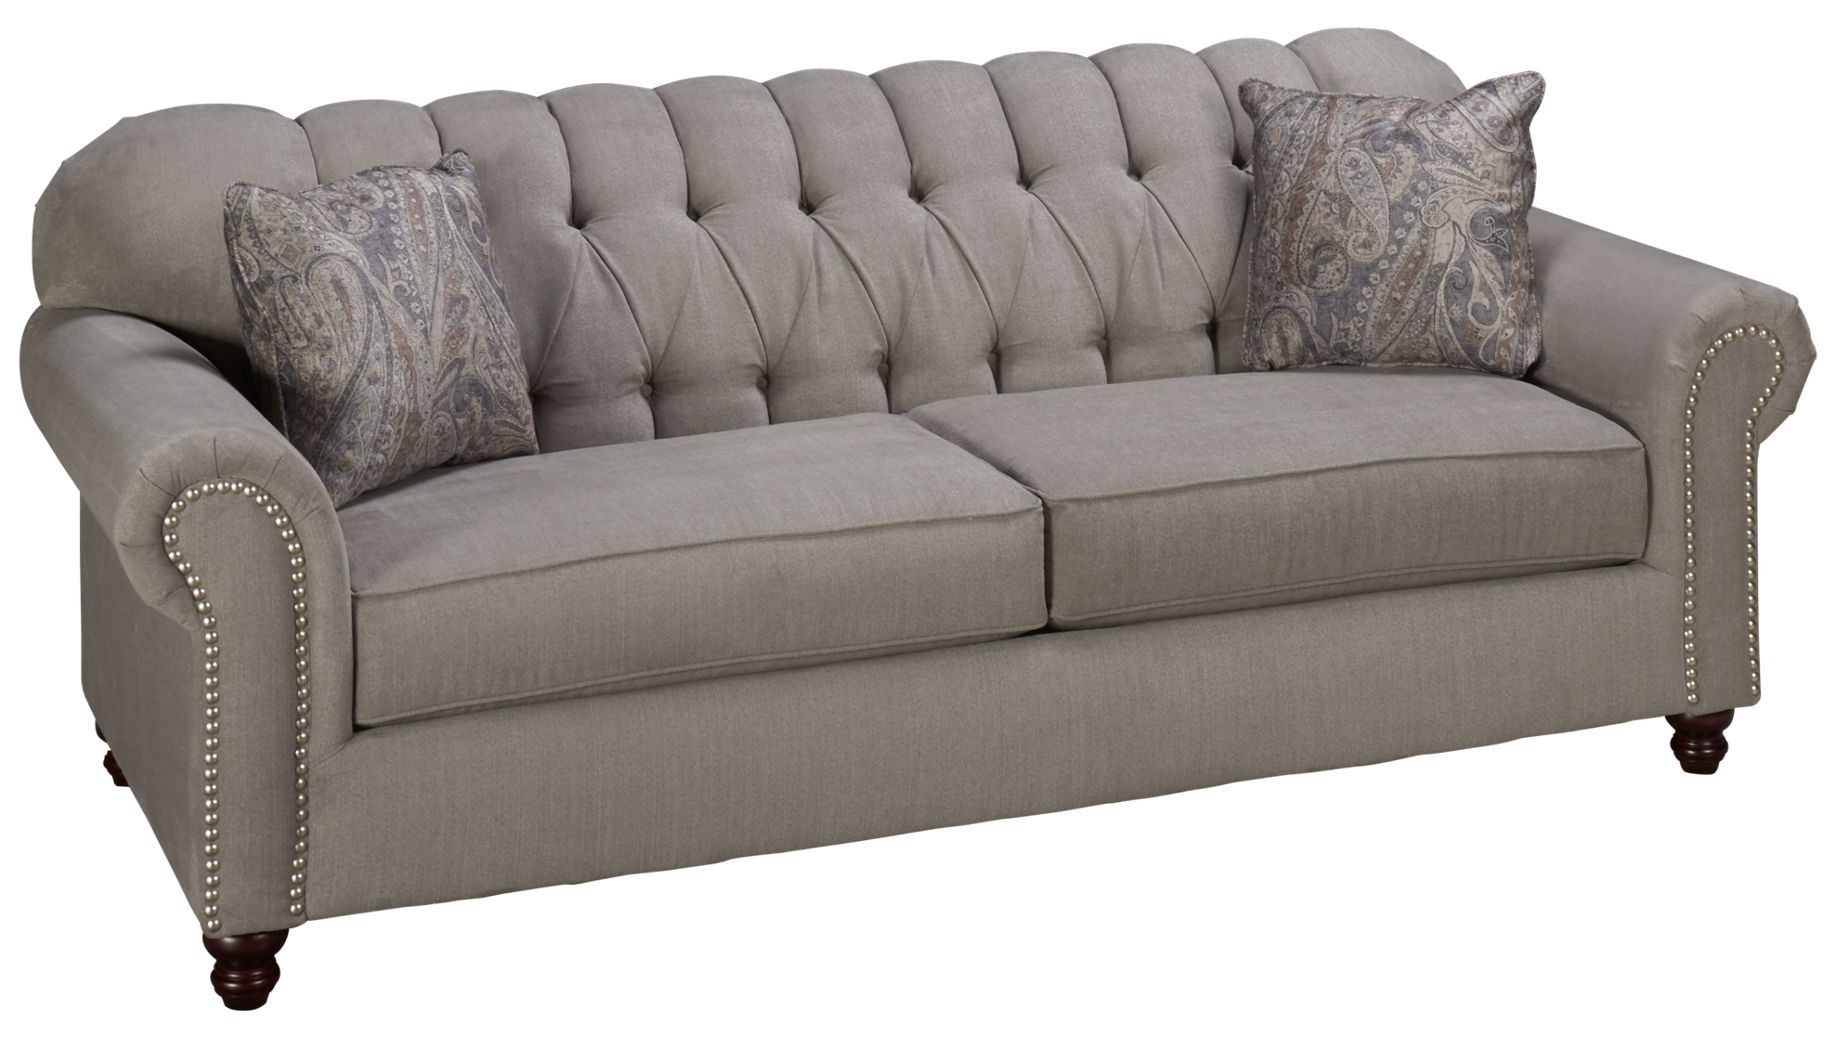 klaussner sofa klaussner holland traditional hybrid sofa